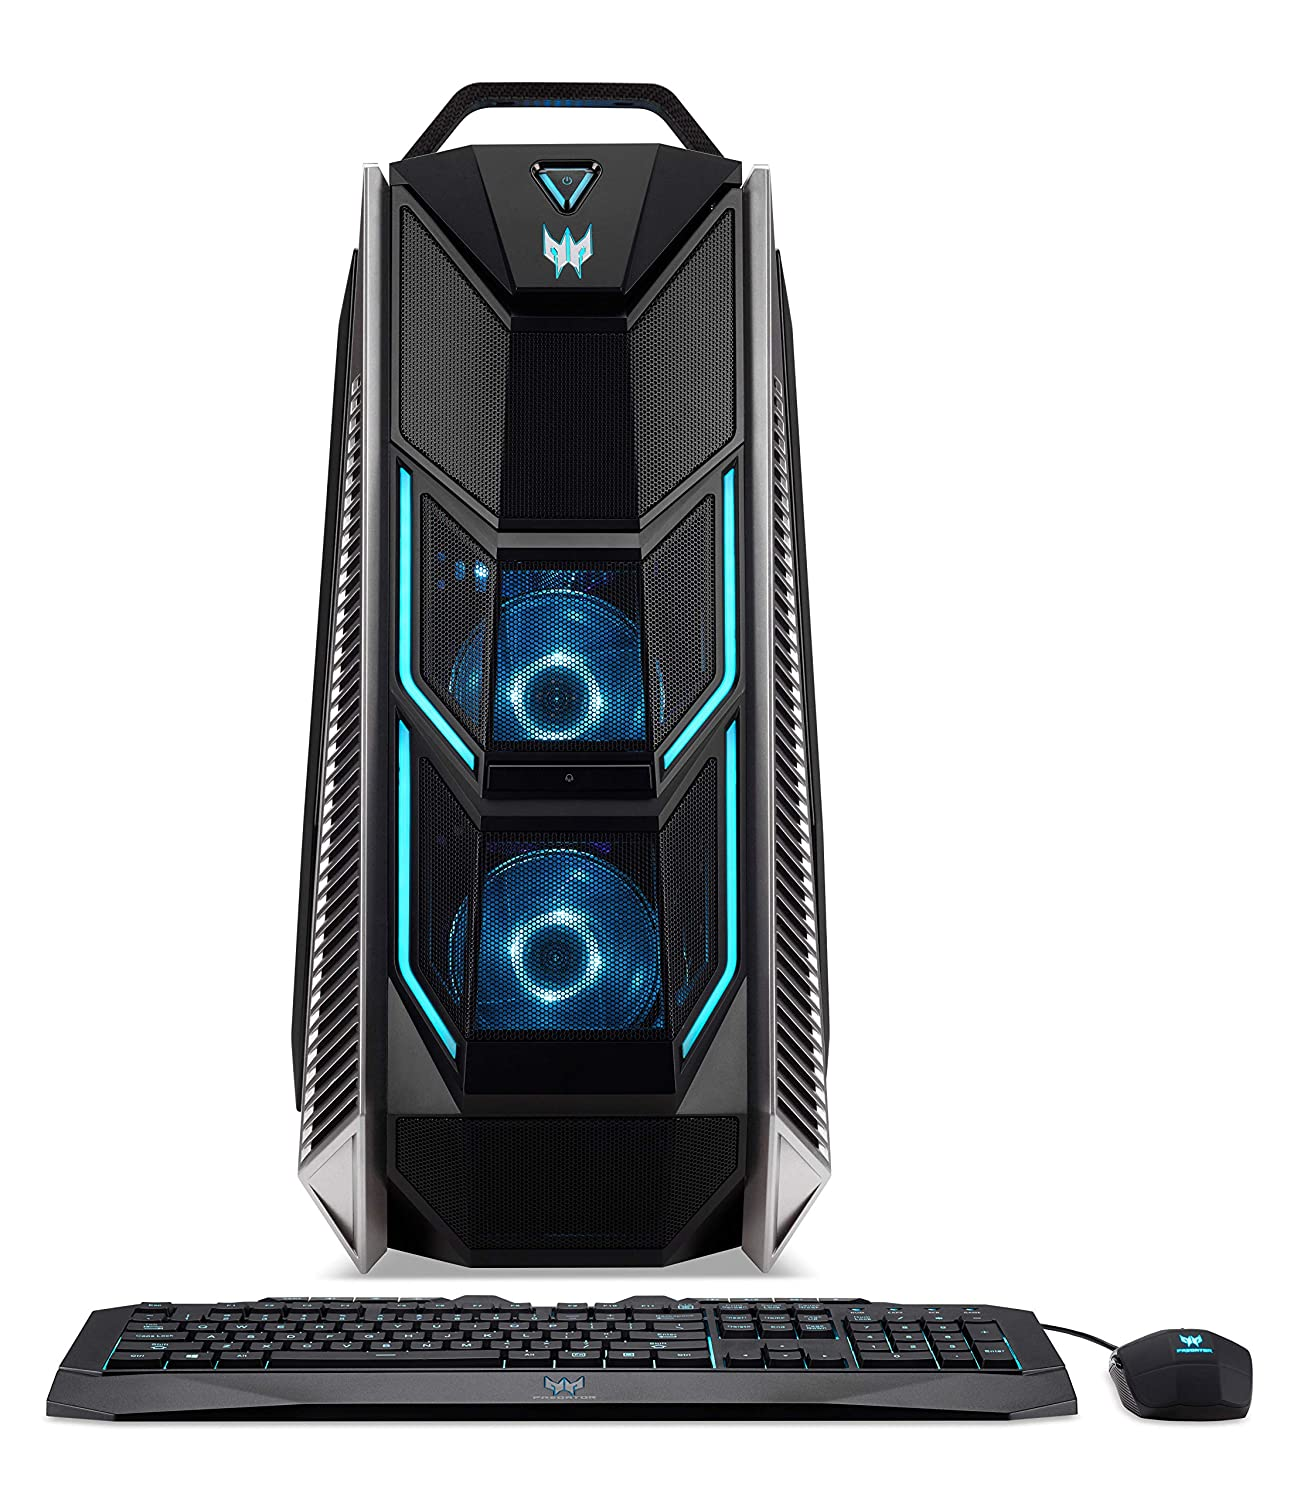 Acer Predator Orion 9000 3,3 GHz Intel® Core™ Serie X i9-7900X Negro Torre PC - Ordenador de sobremesa (3,3 GHz, Intel® Core™ Serie X, 16 GB, 1256 GB, DVD Super Multi, Windows 10 Home)